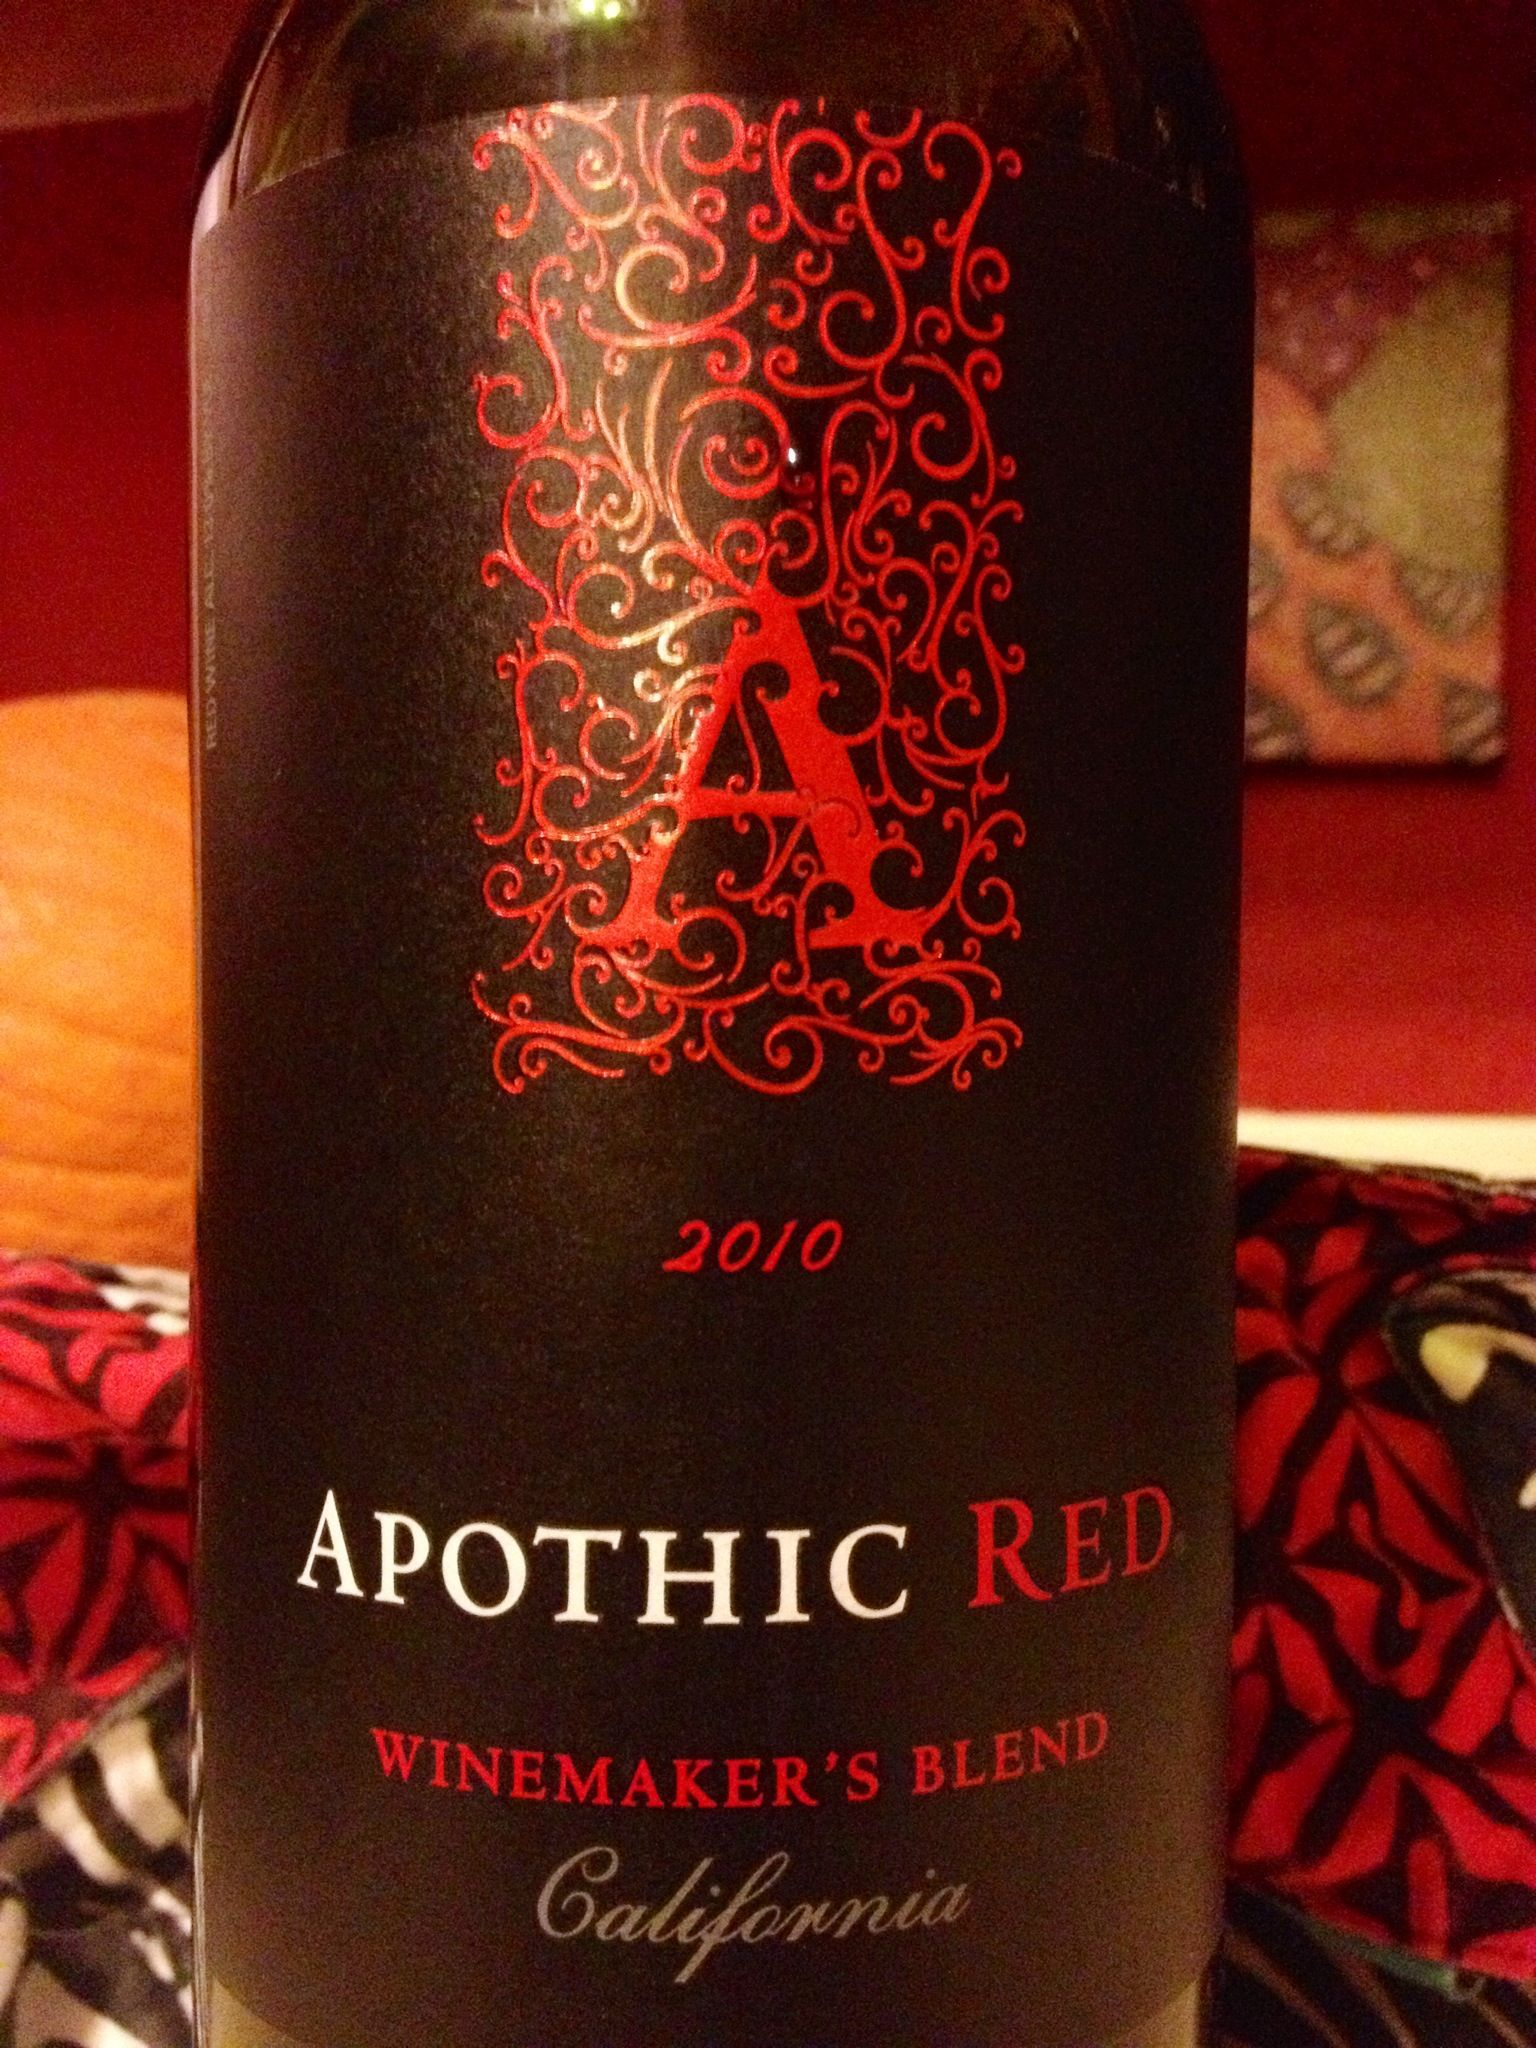 Apothic Red A Wonderful Inexpensive Red Blend Of Zinfandel Syrah Cabernet Sauvignon And Merlot This Is One If Our Wines Favorite Wine Cabernet Sauvignon